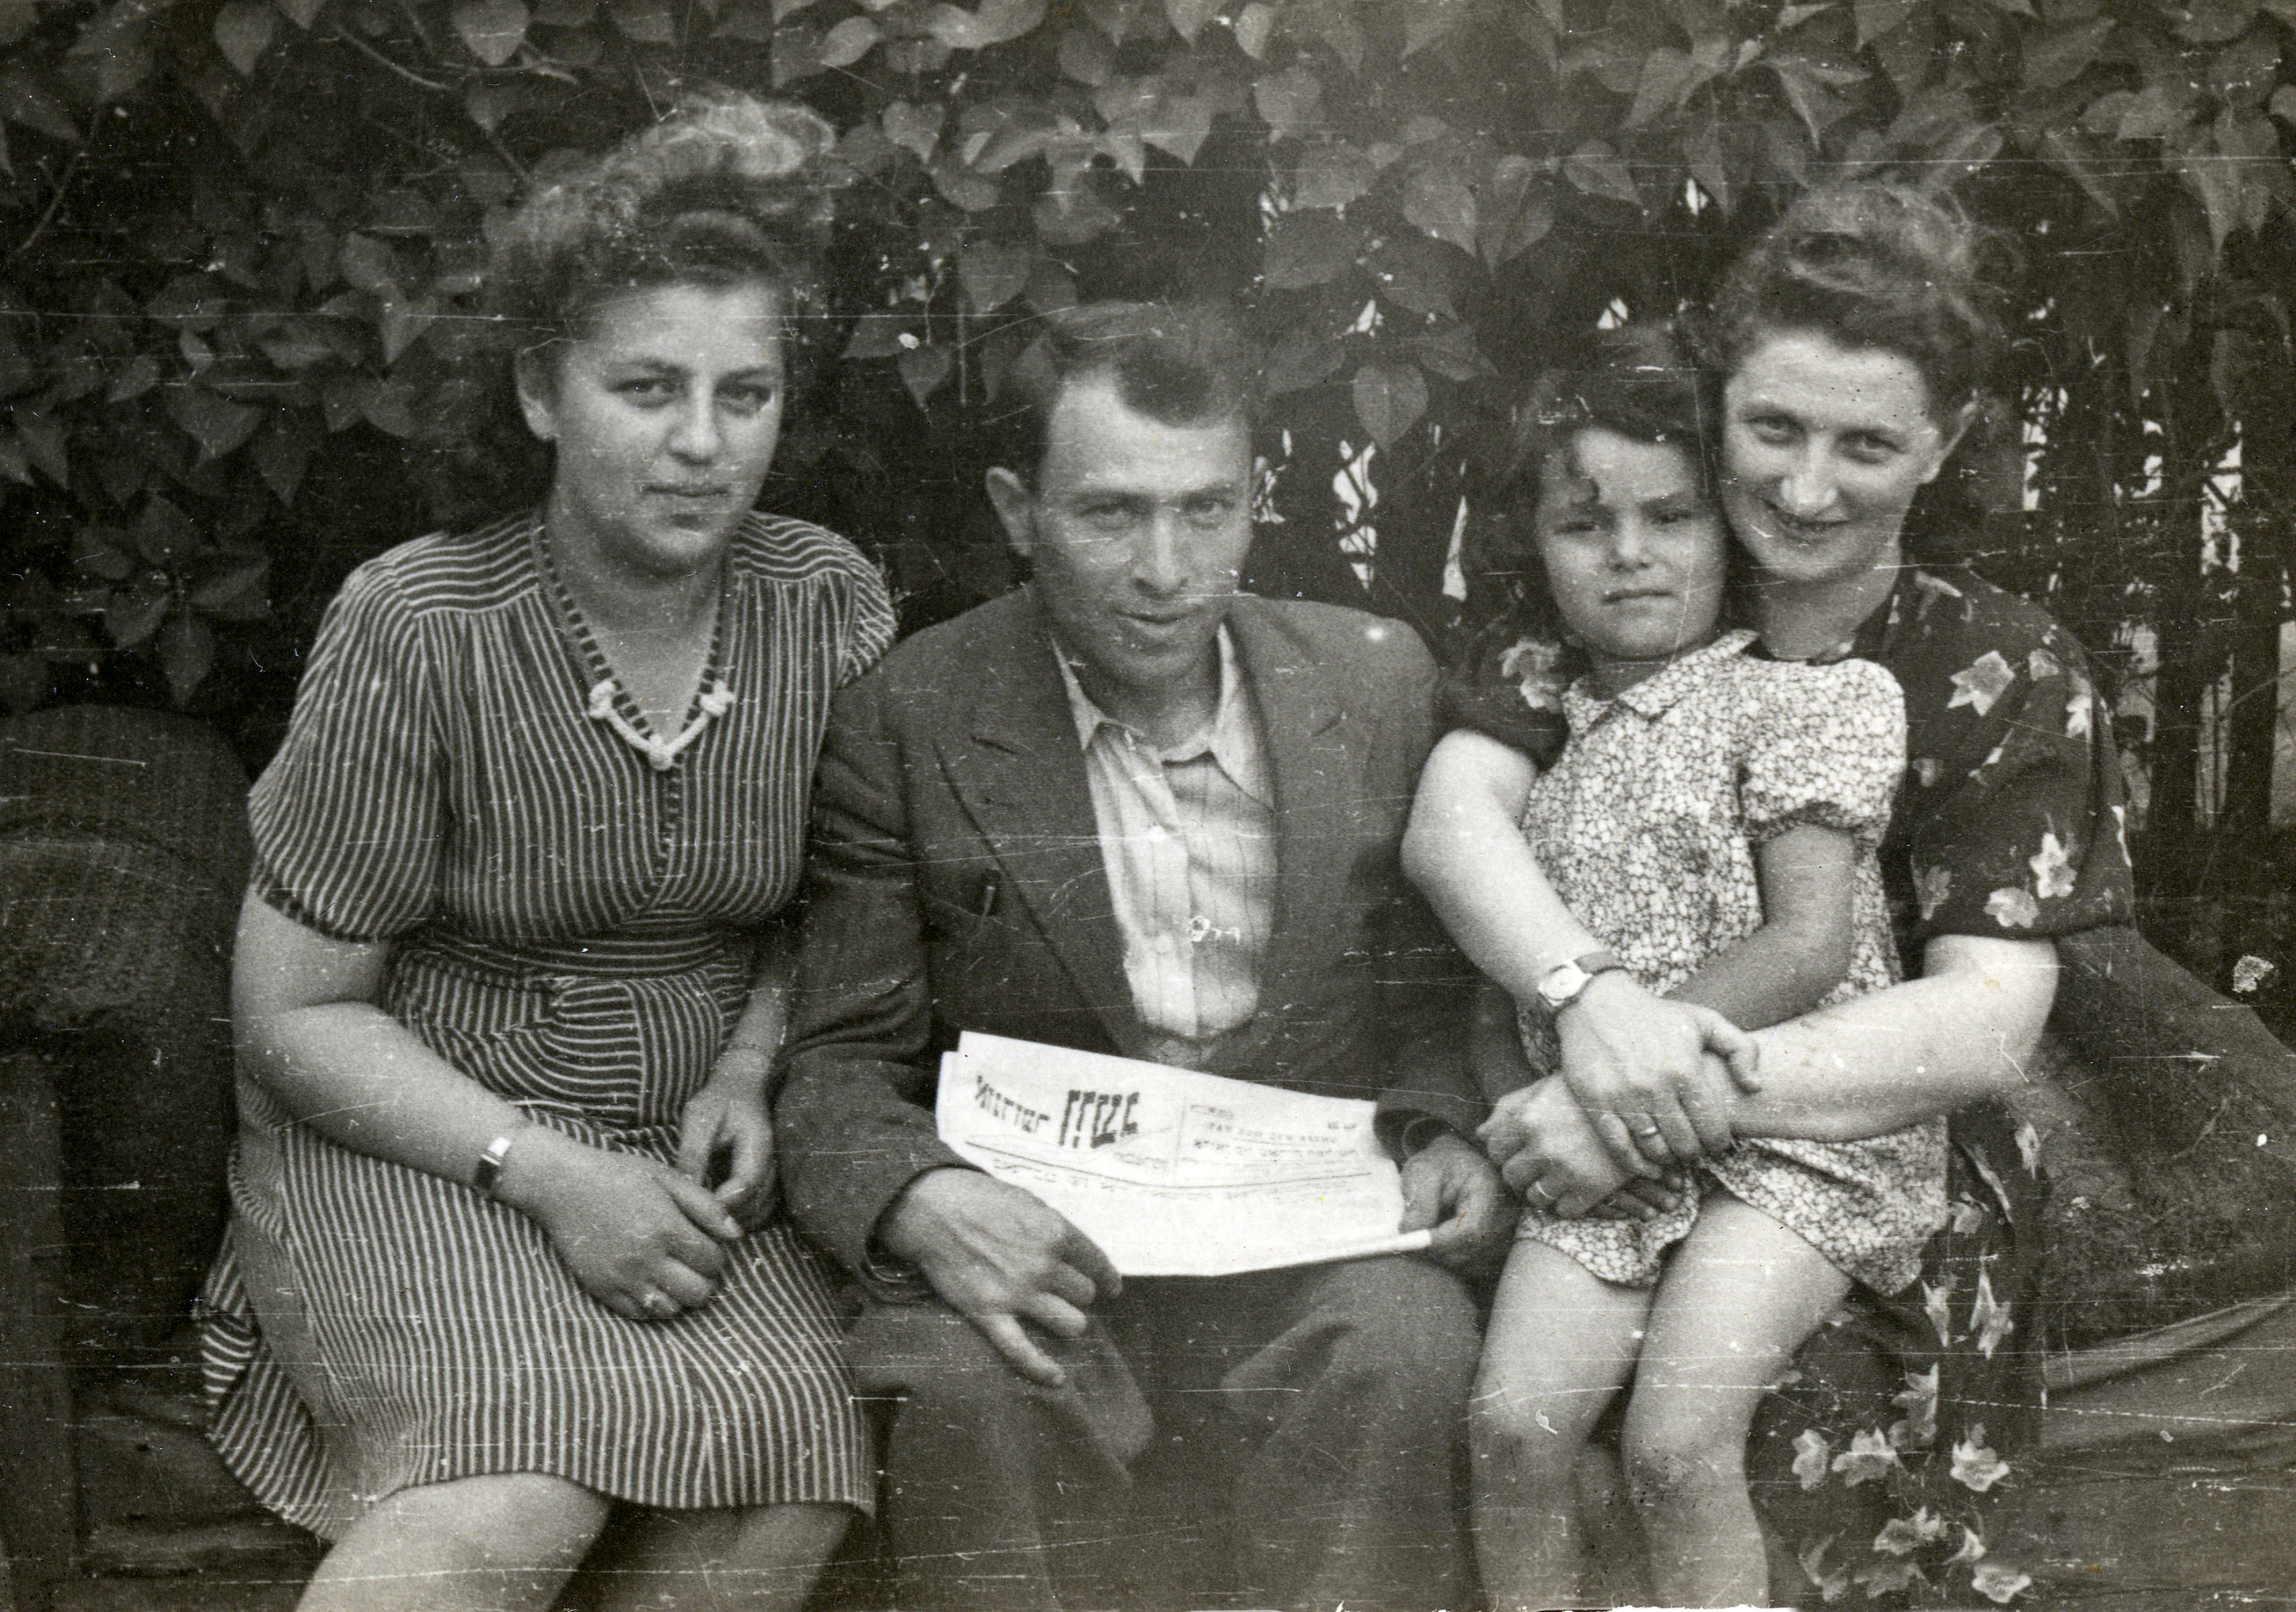 Basia Szrajer dsits on the lap of Rosa Pick, a survivor from her hometown in Poland.   Rosa's husband Max is in the center with a newspaper and an unidentified woman is on the left.